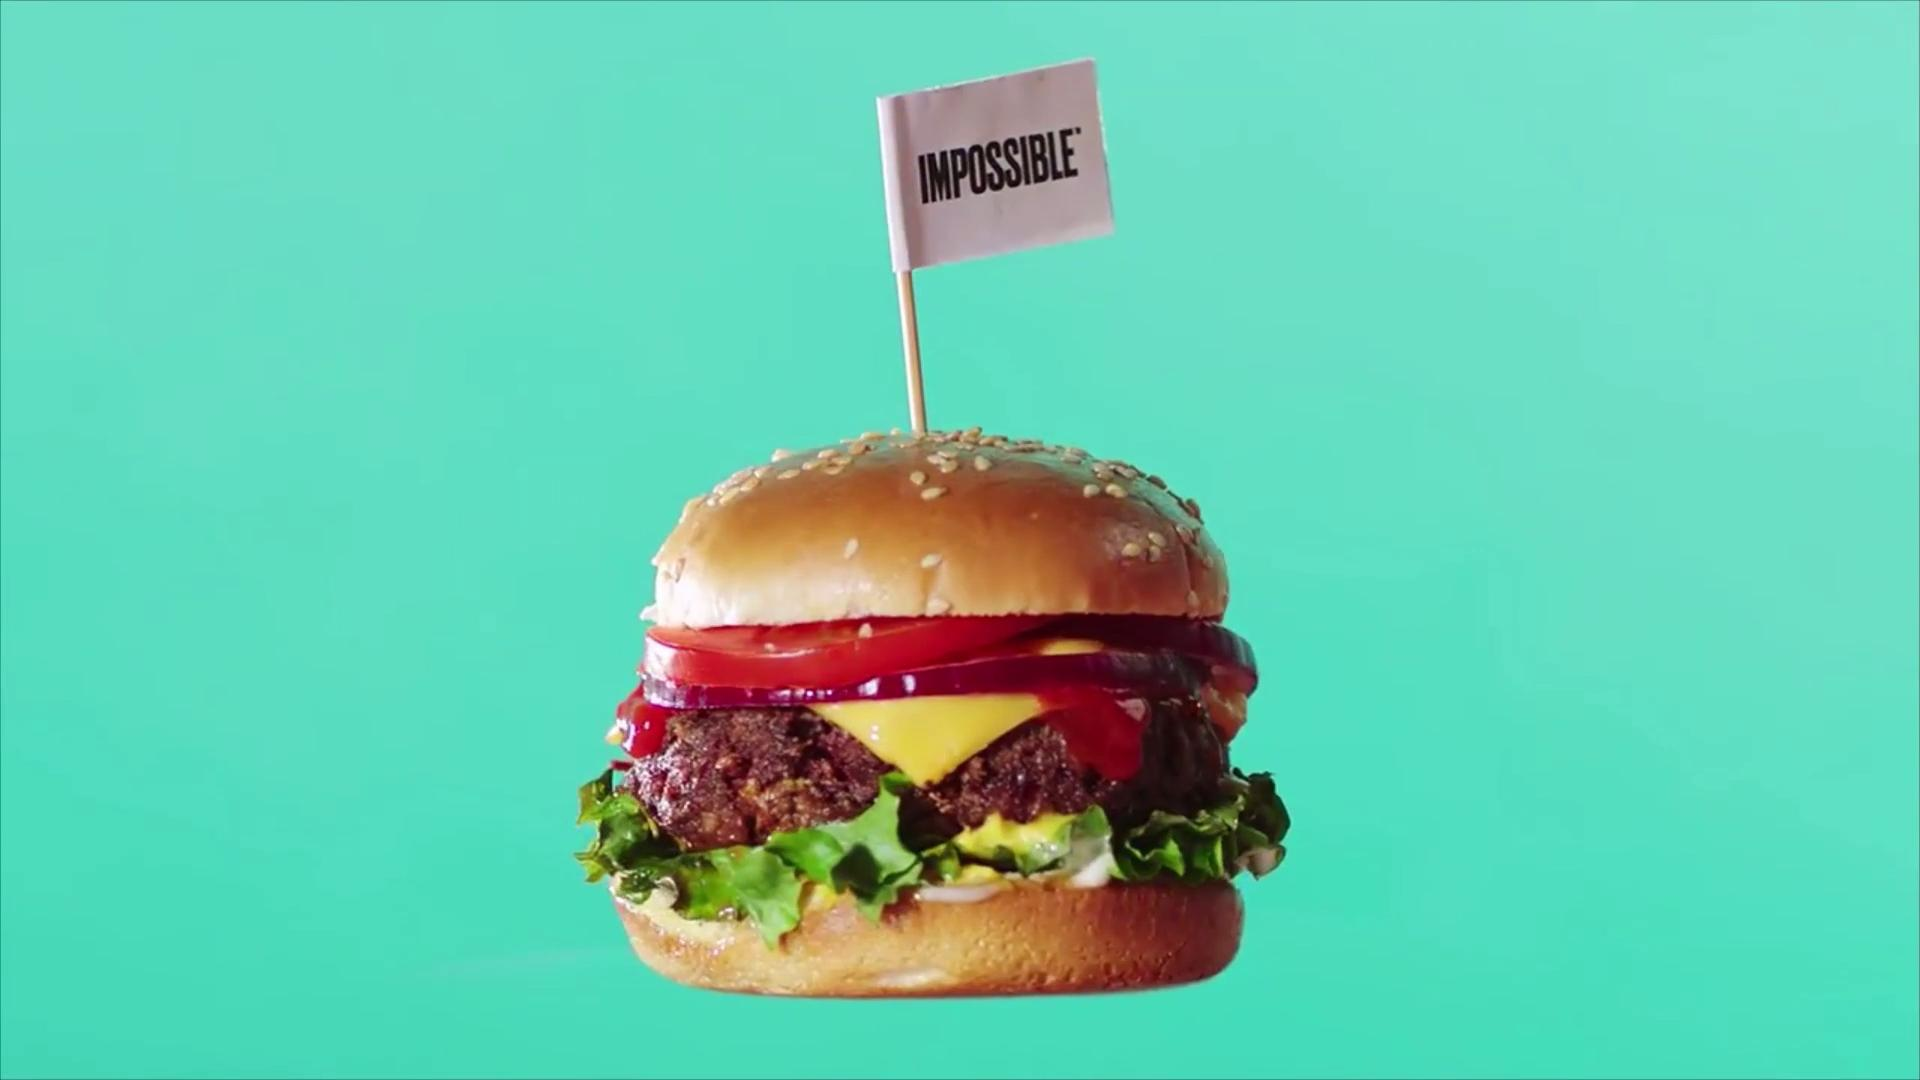 Impossible Burger Arrives on Grocery Shelves Next Year